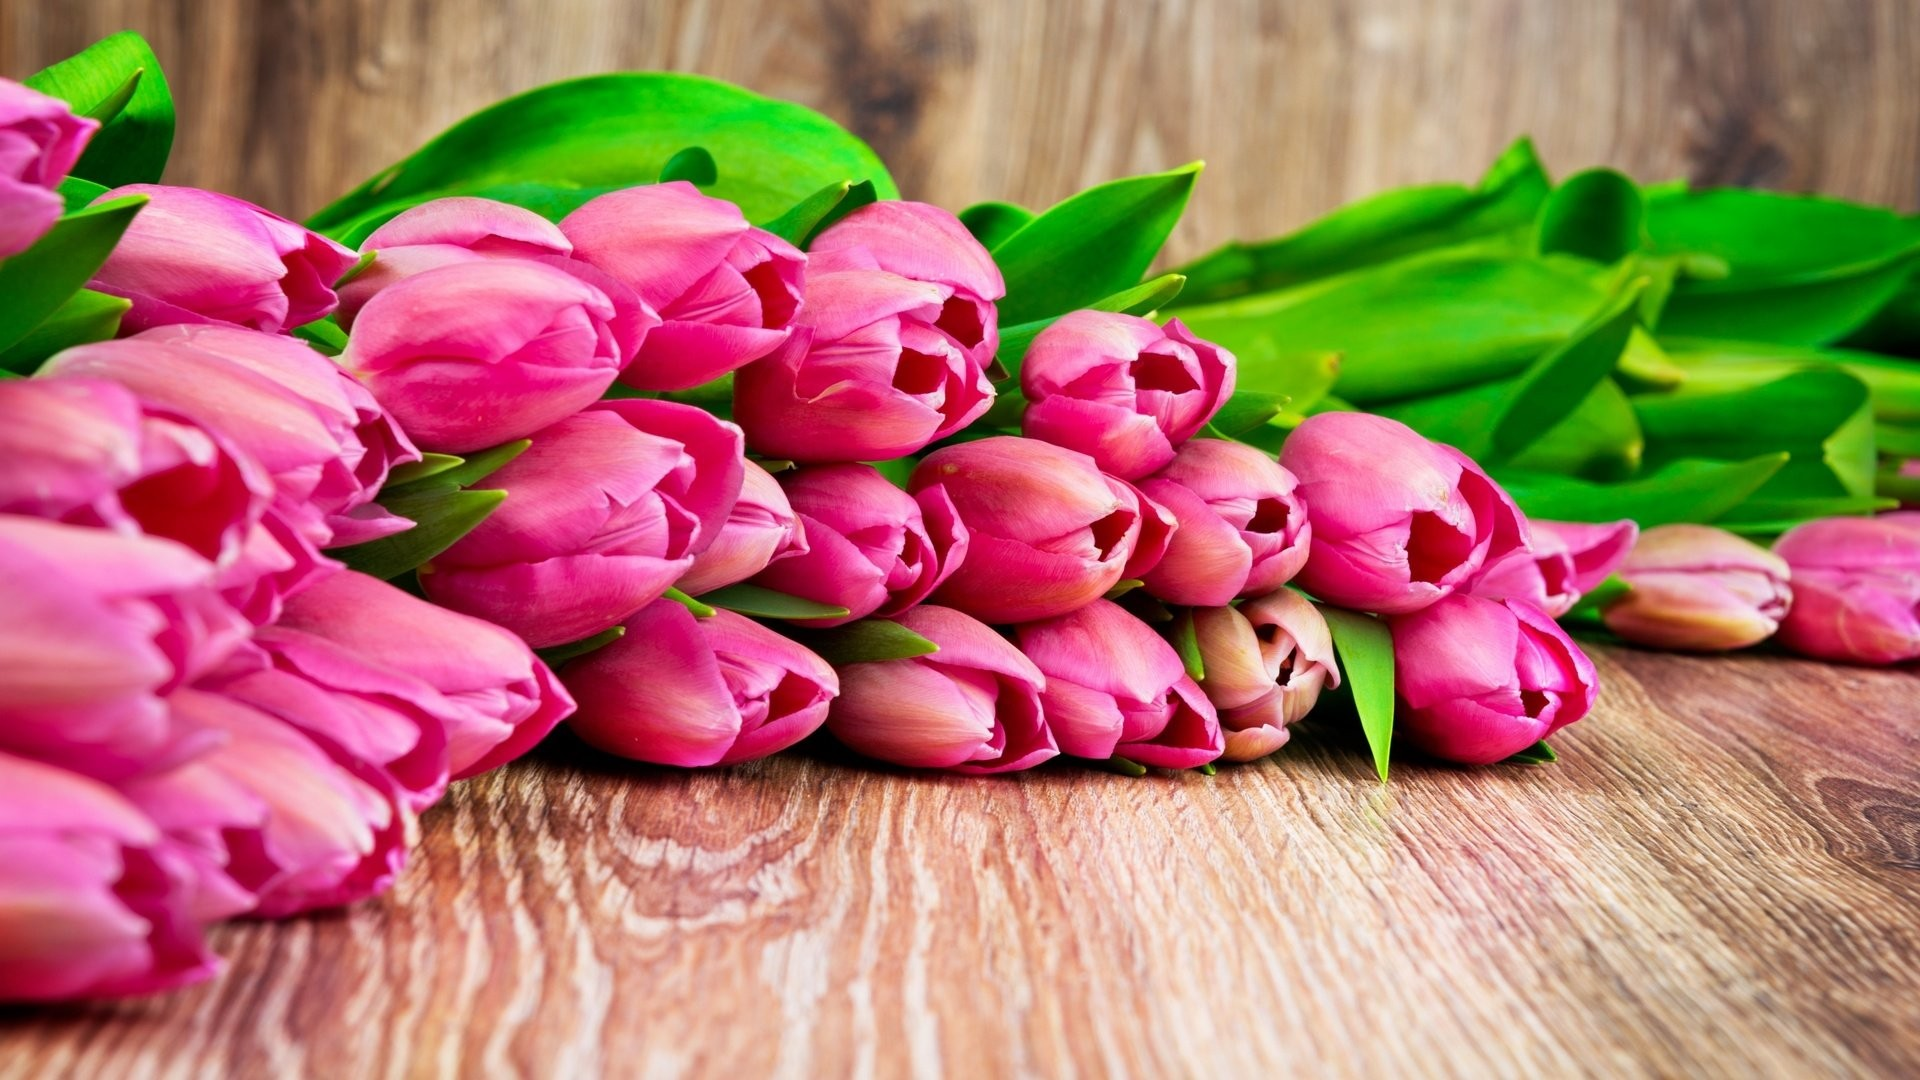 Women's Day Flower download image